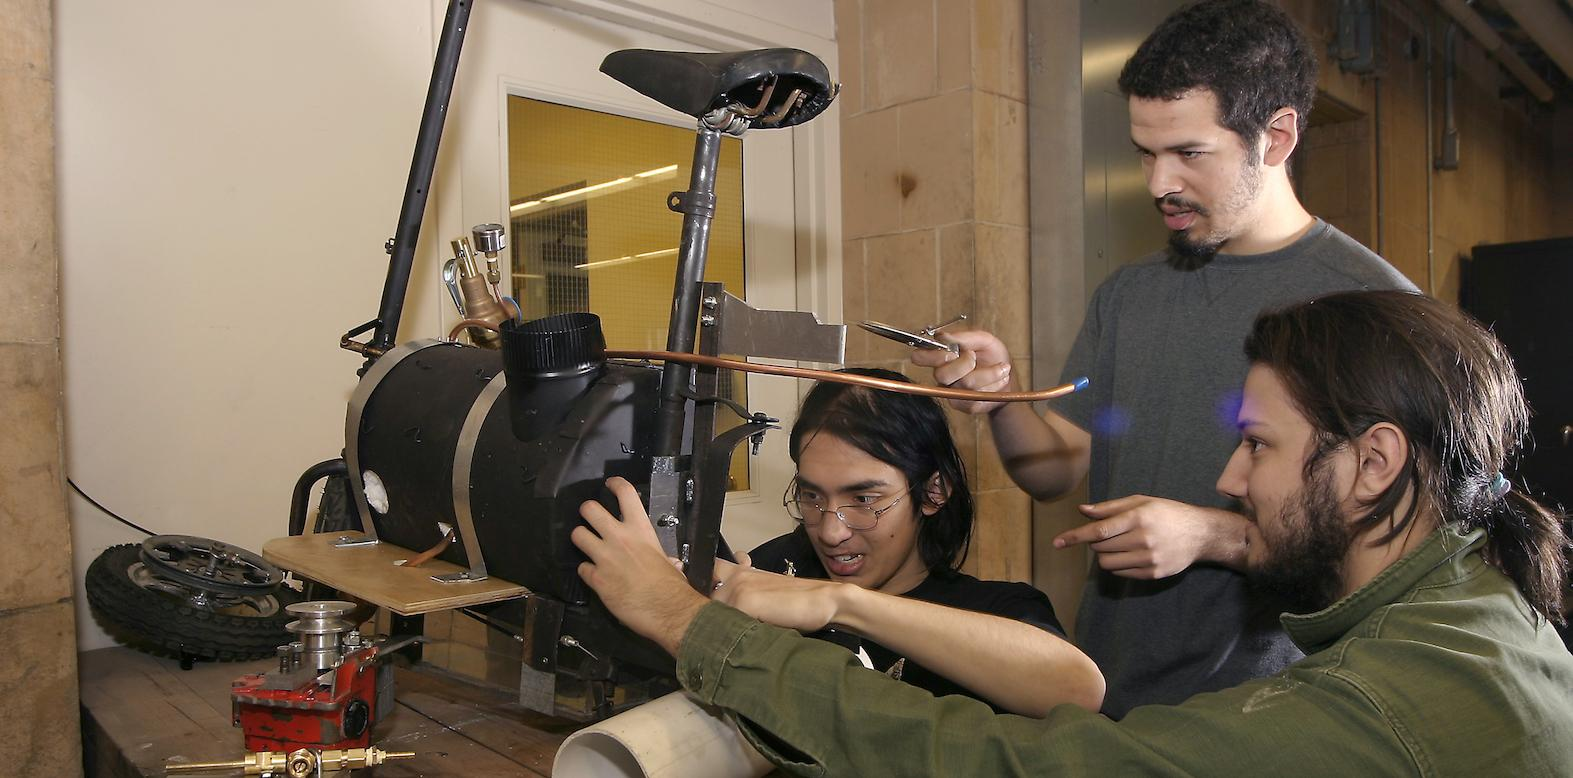 Three students at a workbench make adjustments to a device that includes a bicycle seat and an enclosed vessel